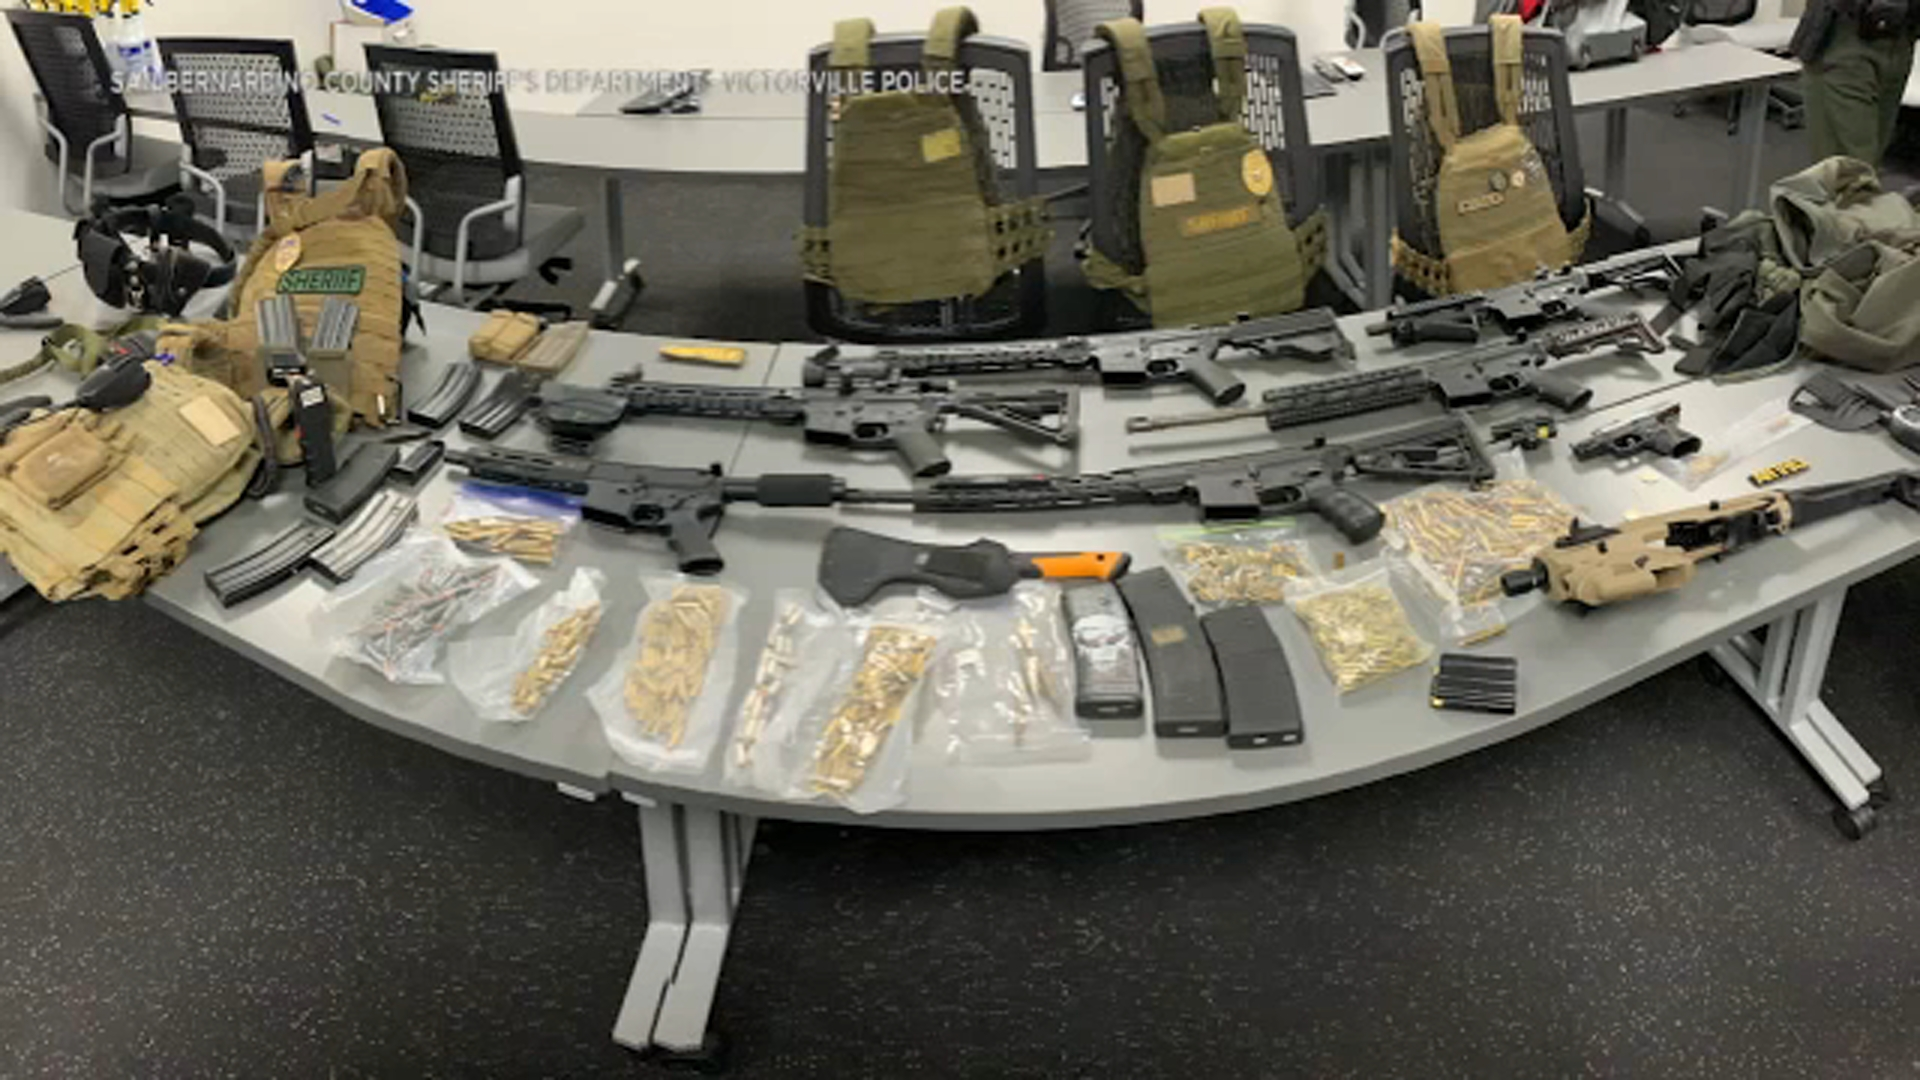 Victorville police find cache of weapons, including multiple AR-15-style rifles, in stolen vehicle